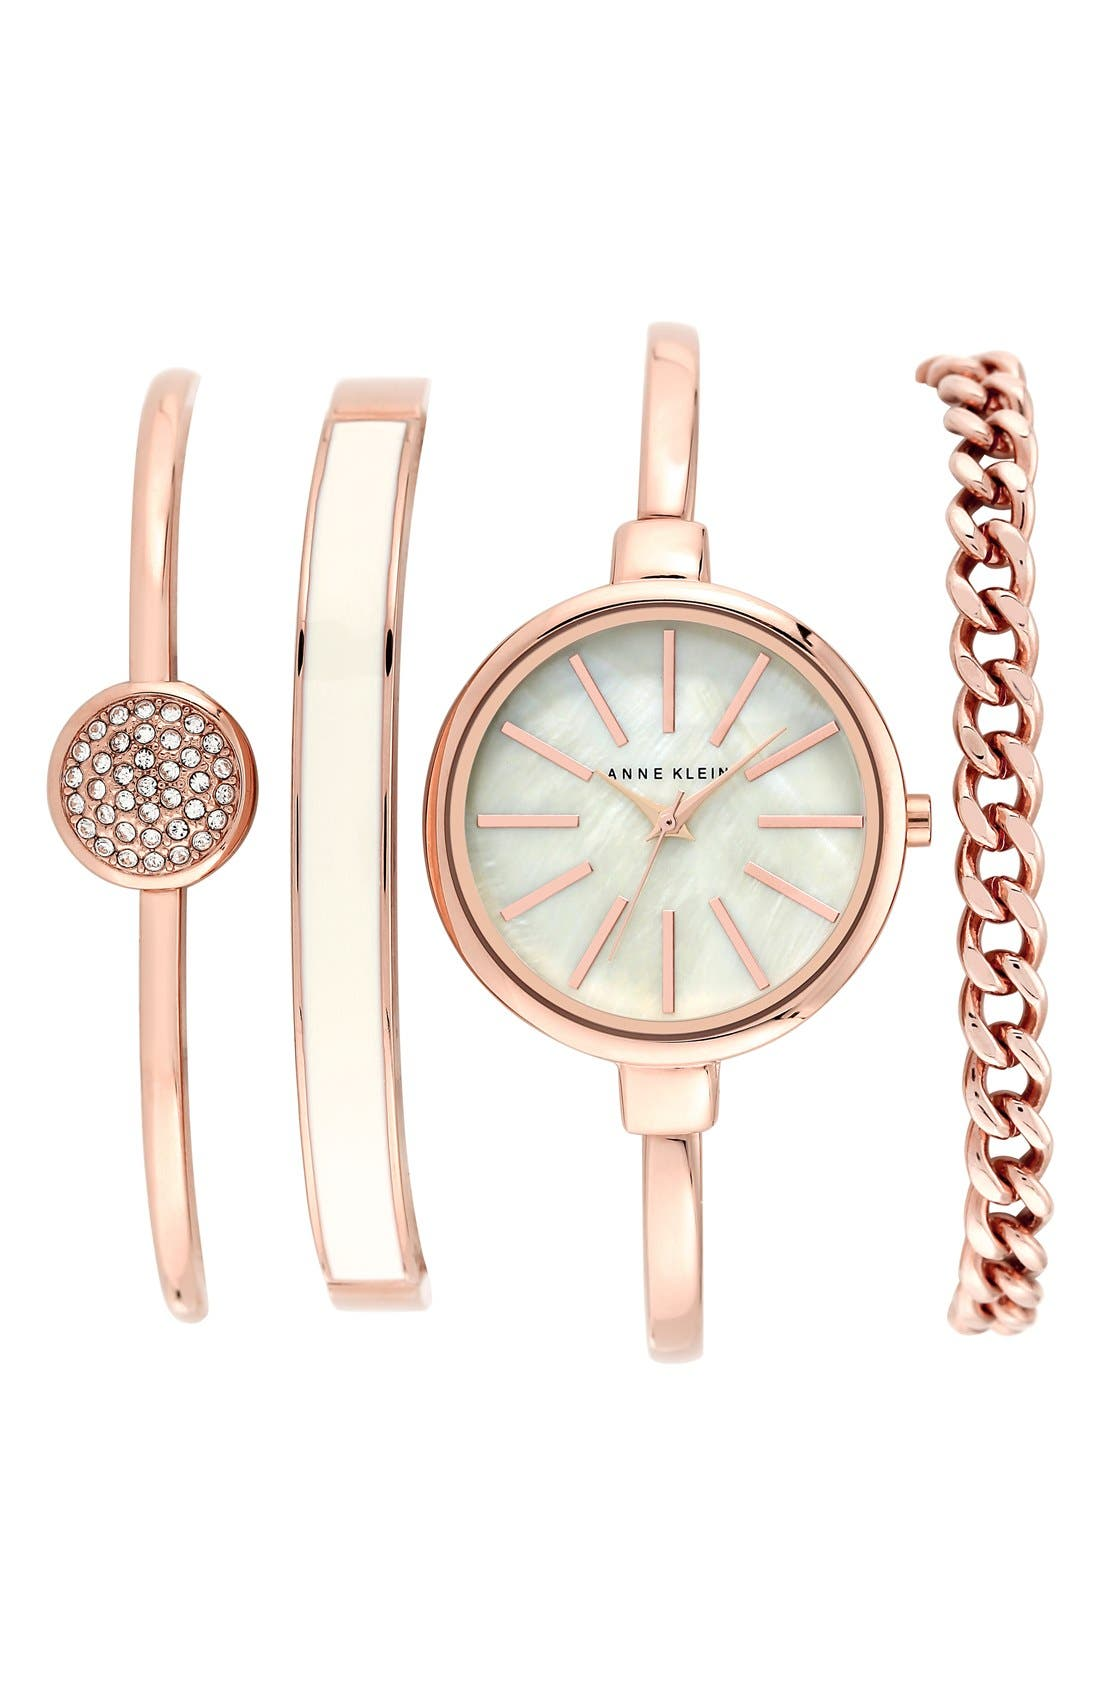 Main Image - Anne Klein Round Watch & Bangle Set, 32mm